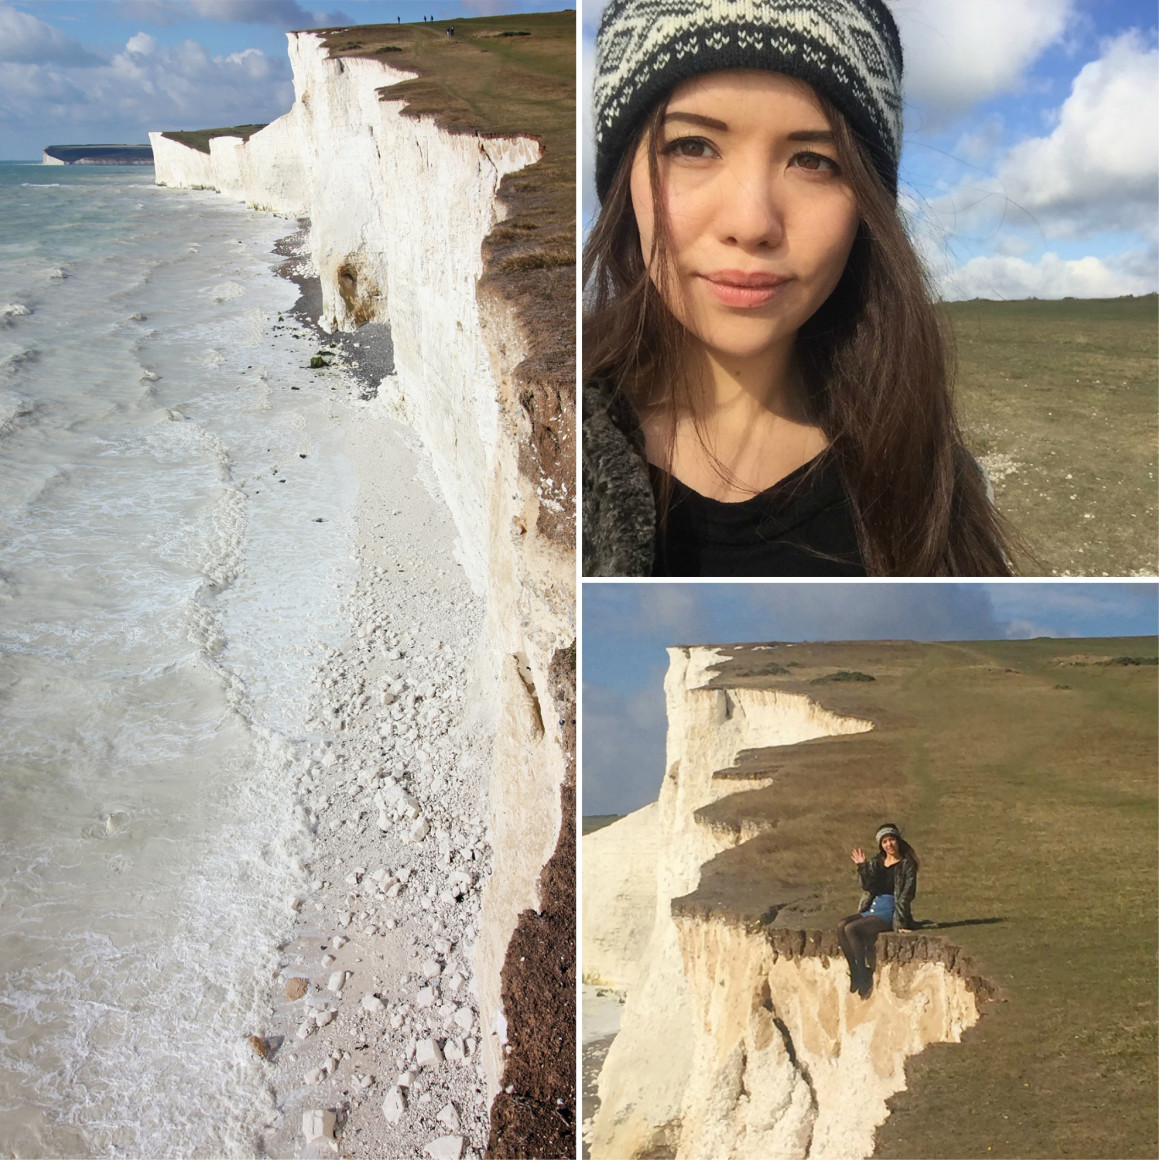 The Chalk Cliffs at Seven Sisters, England